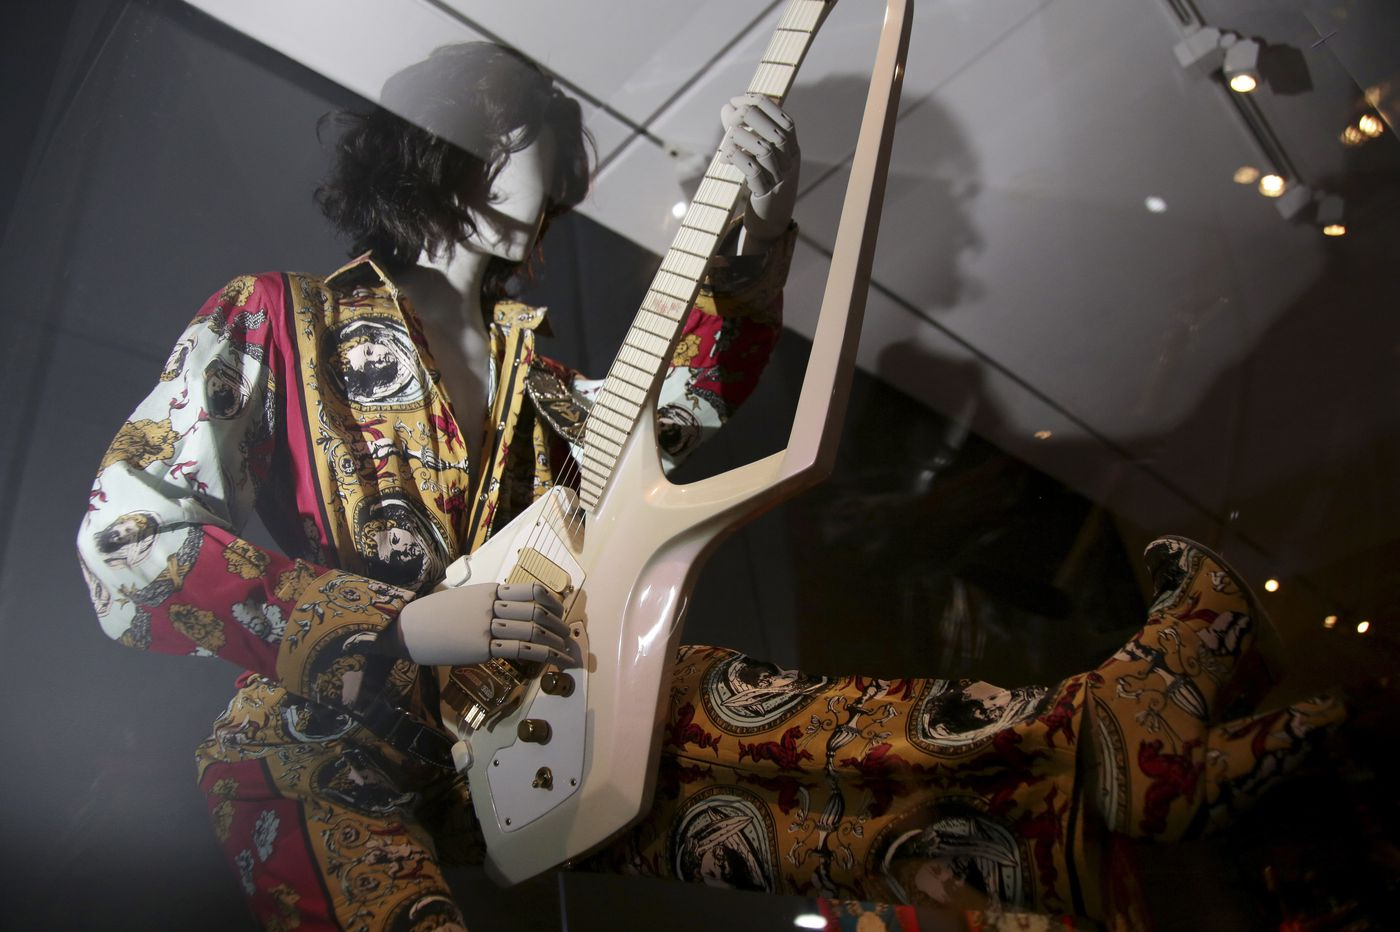 'Play It Loud': Exuberant Met exhibit explores the art of rock-and-roll